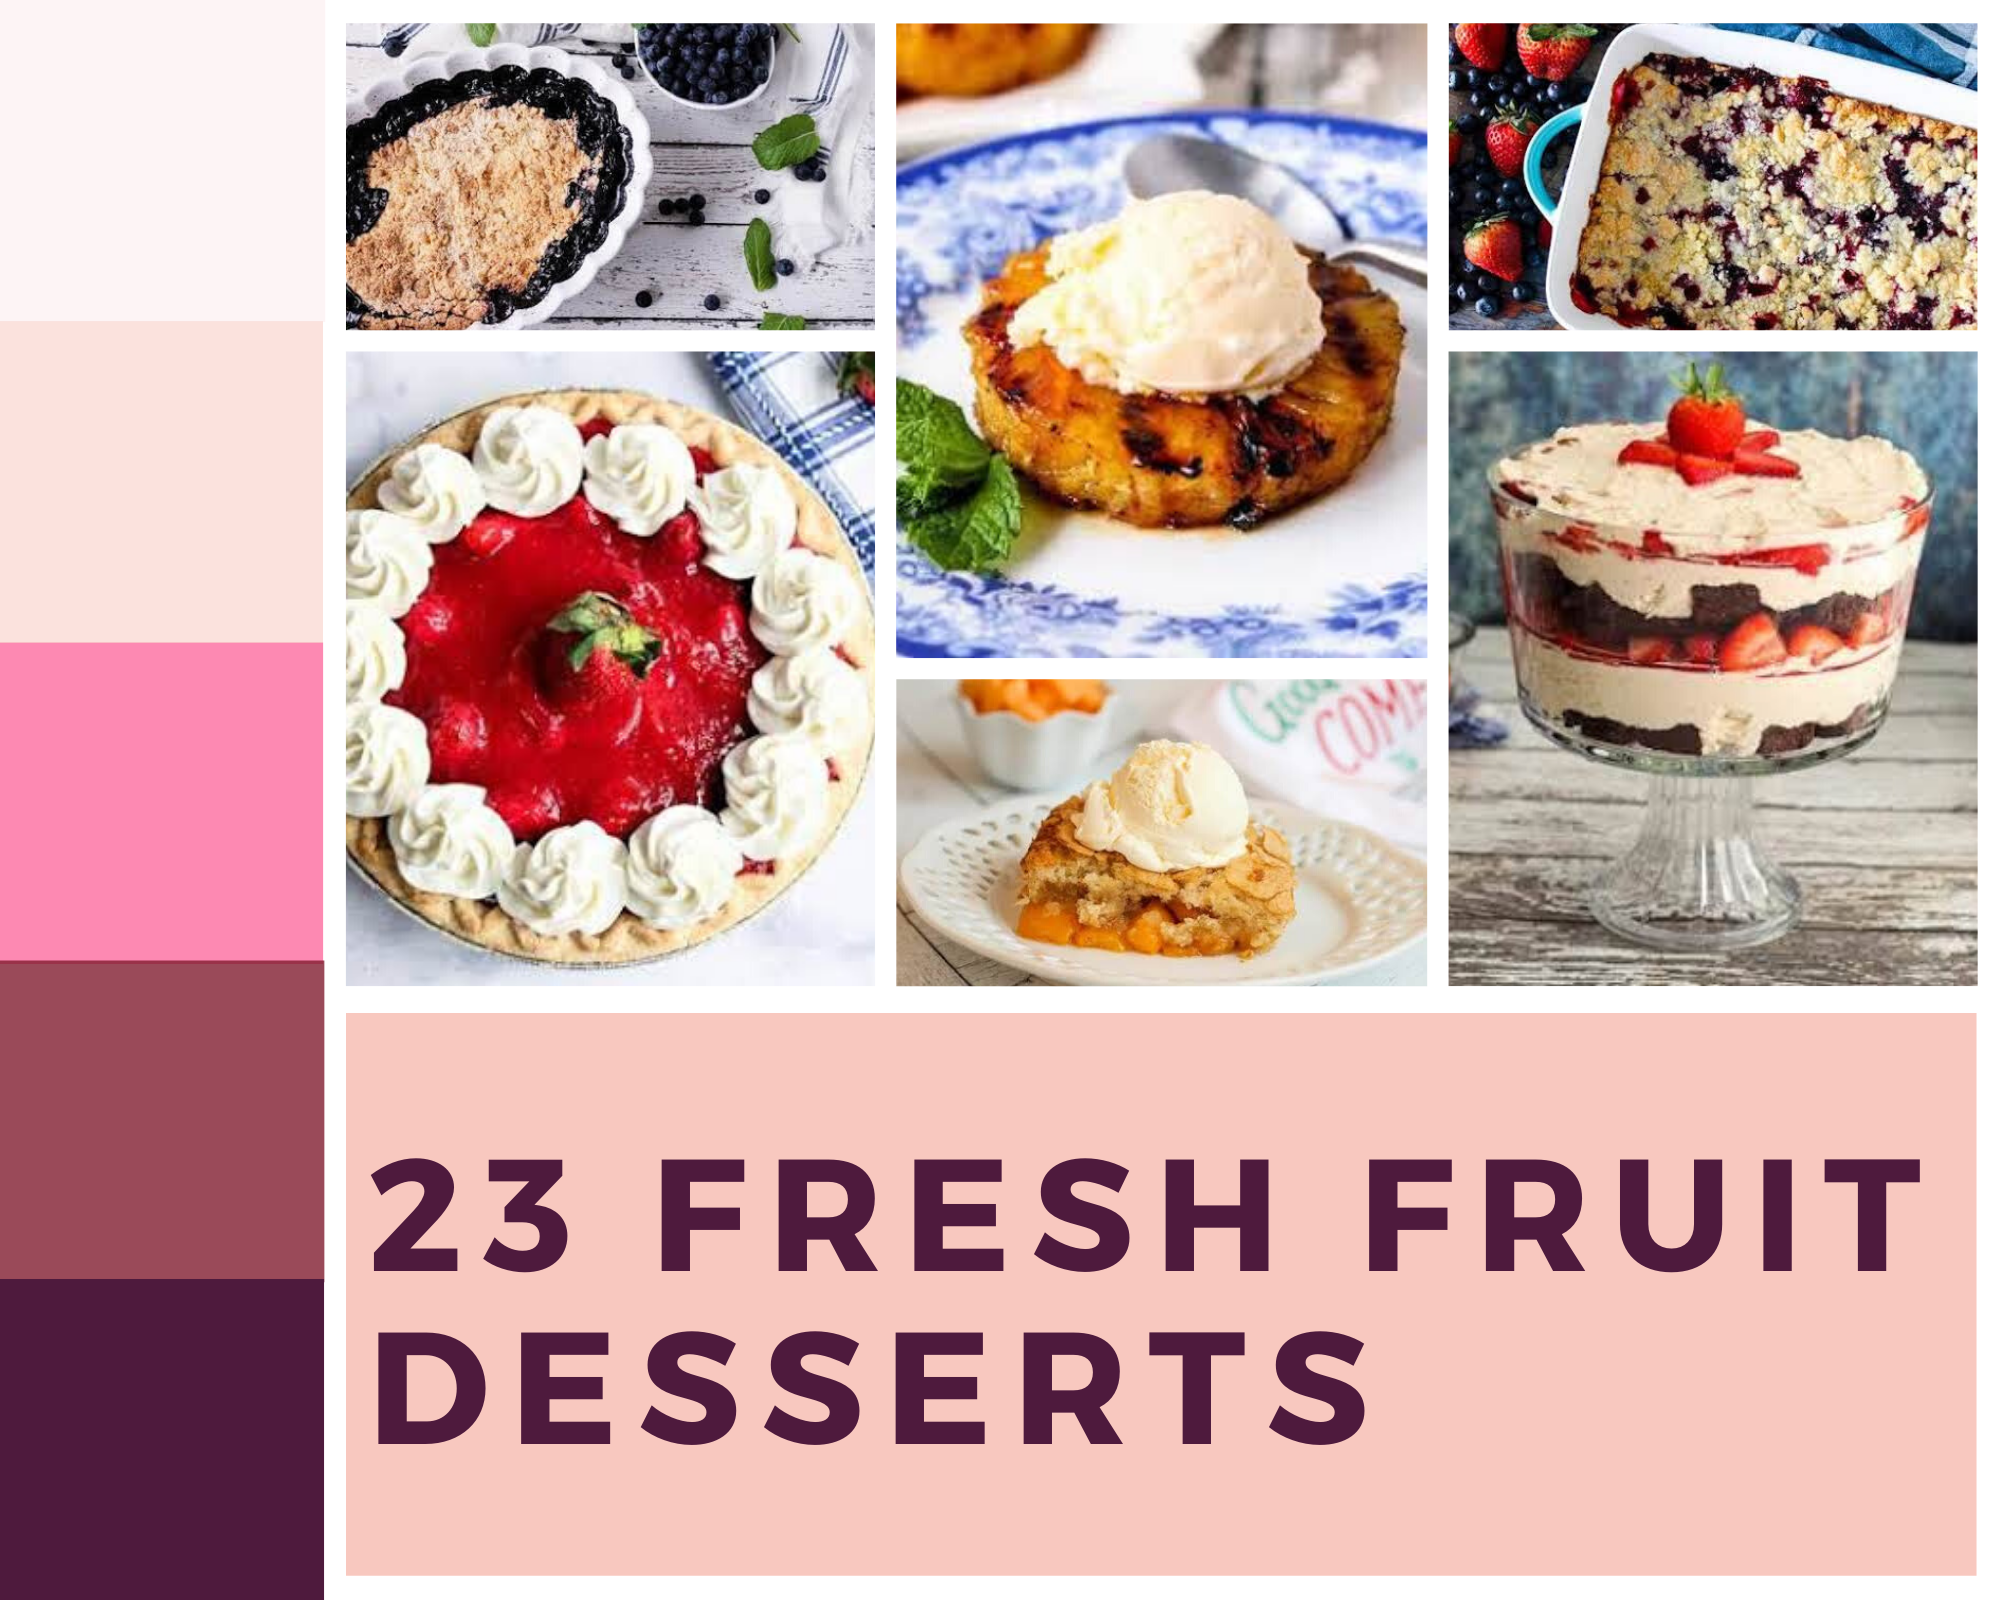 desserts made with fresh fruit